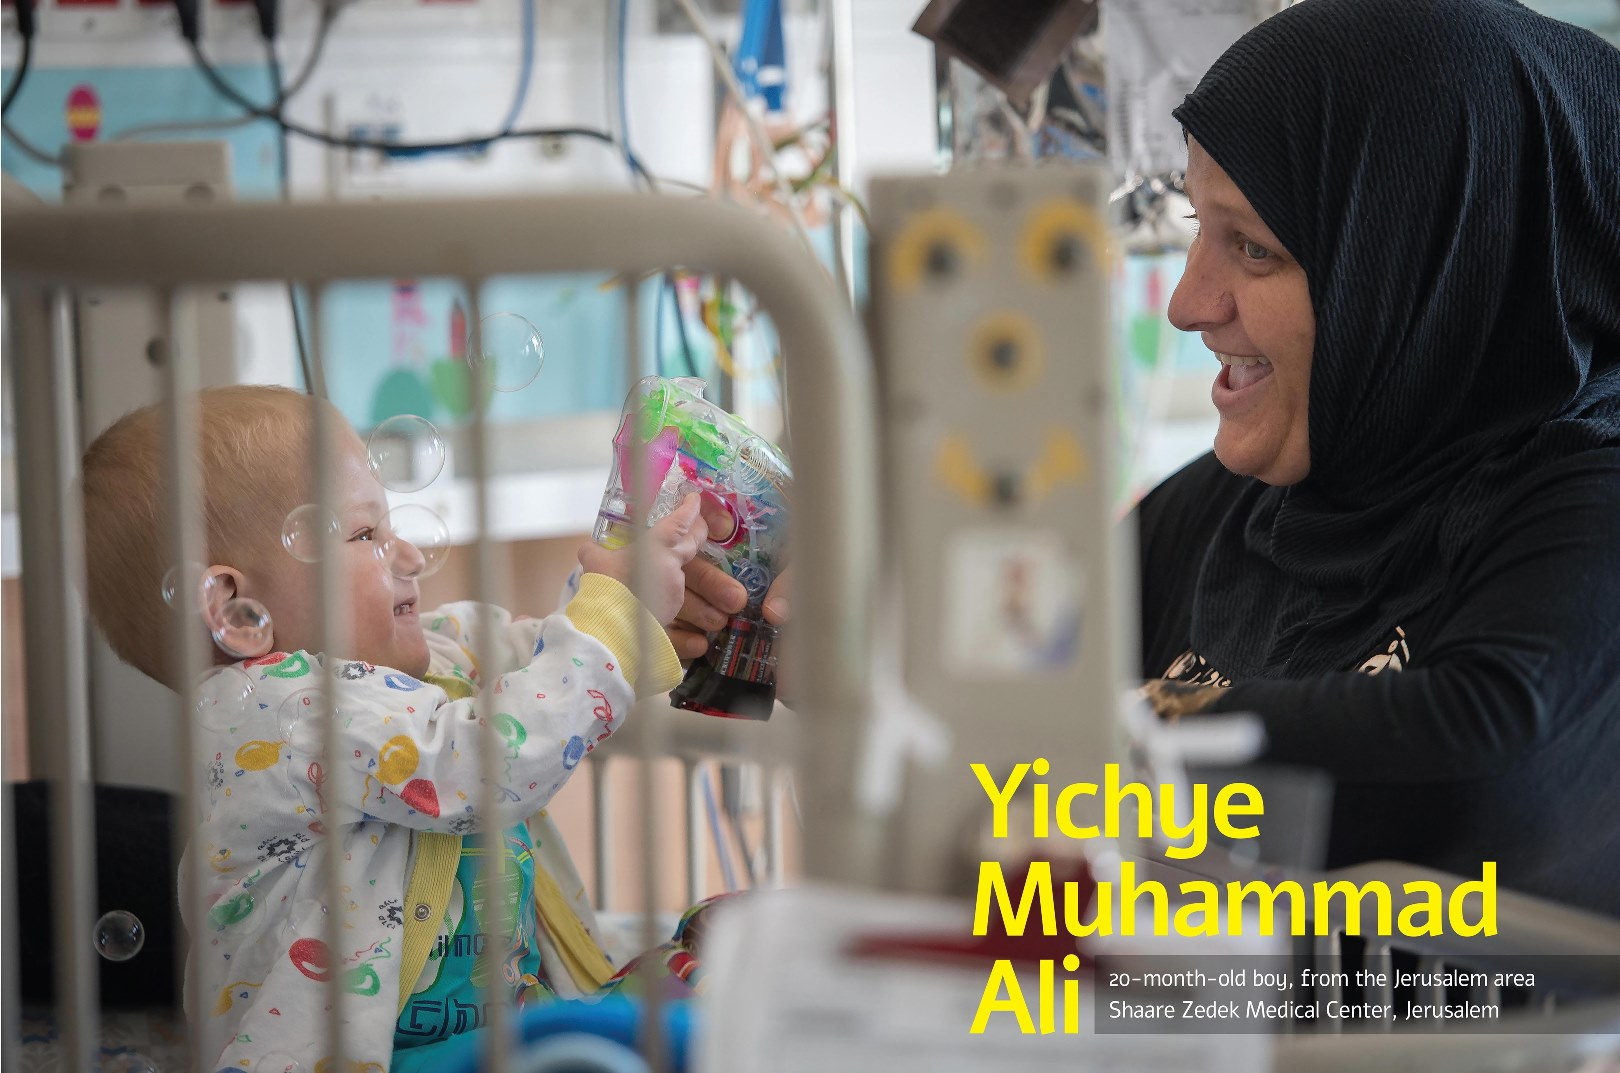 Yichye Muhammad Ali, 20 months, from the Jerusalem area, at Shaare Zedek Medical Center in Jerusalem. Photo by Shahar Azran